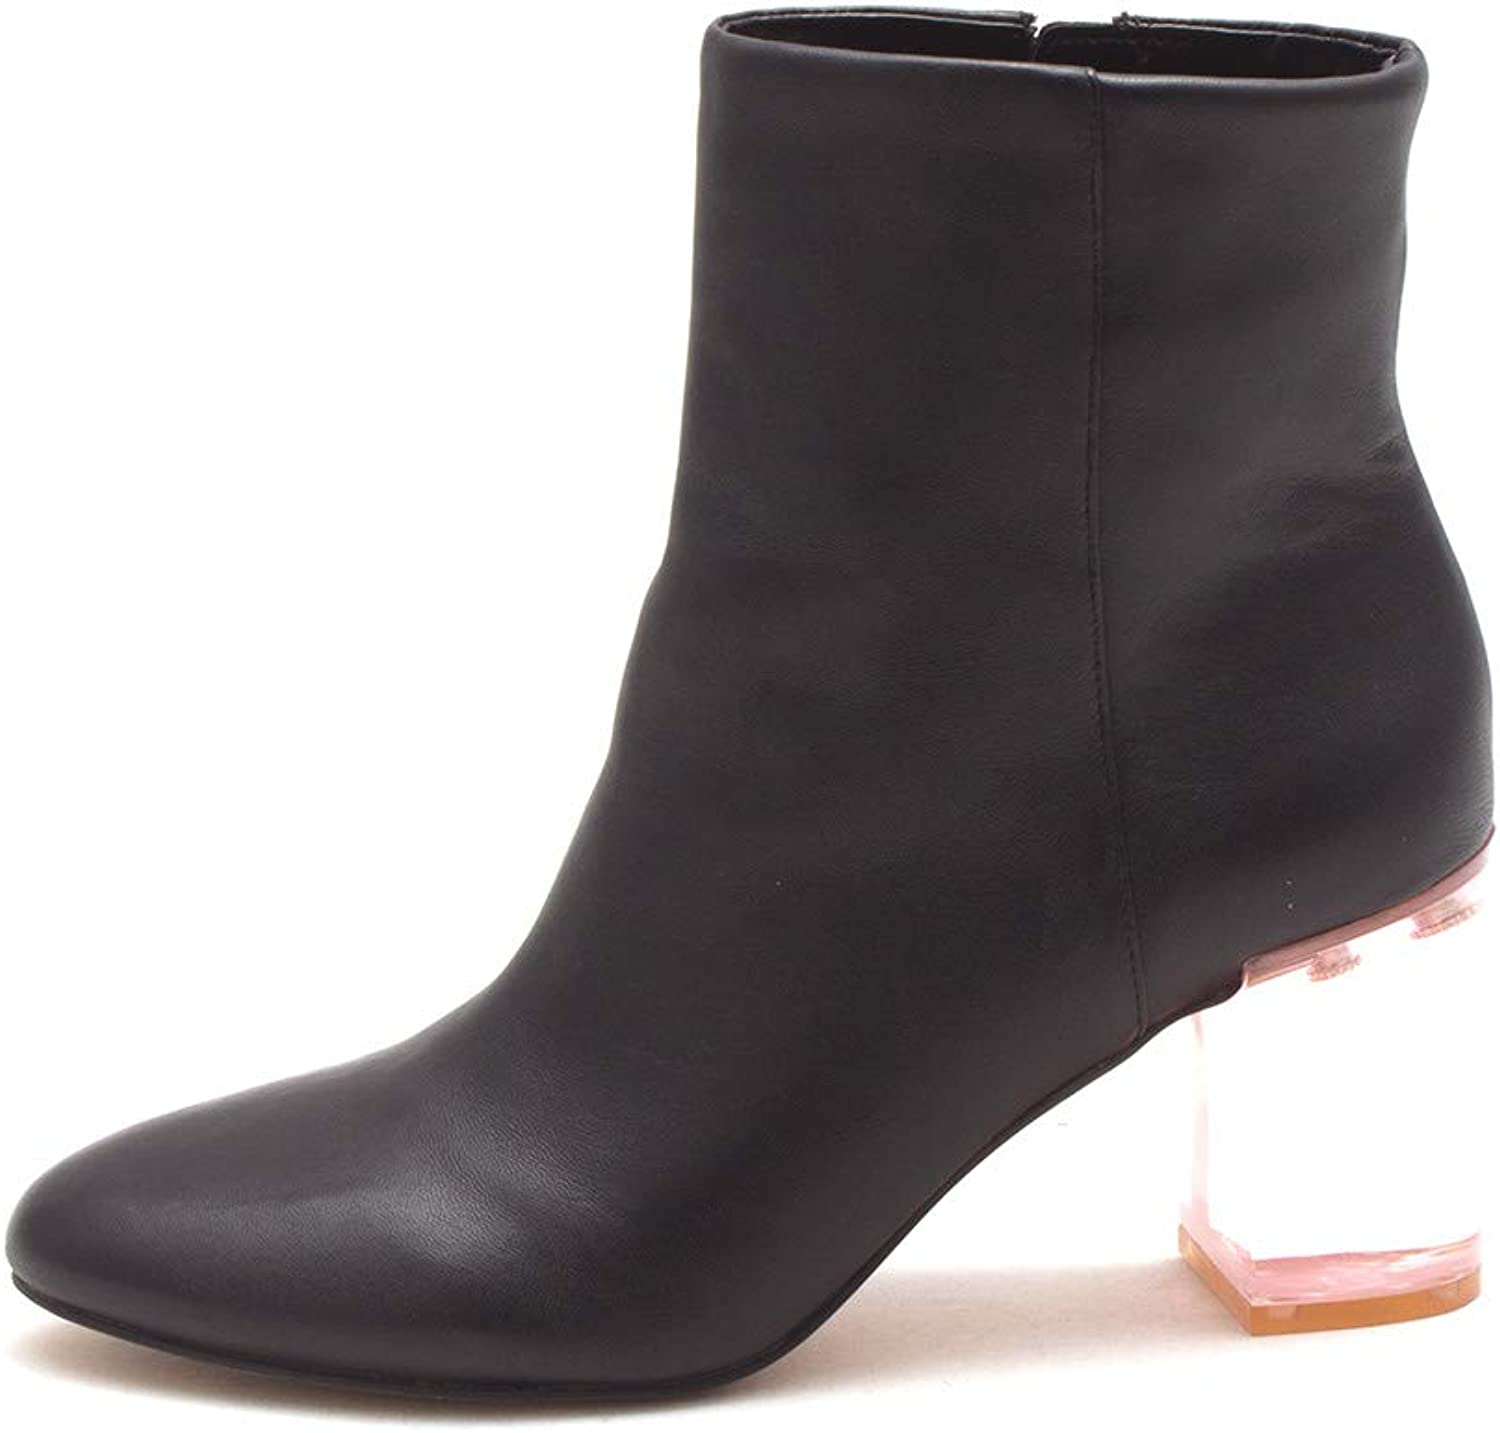 INC International Concepts Womens Georgie Closed Toe Ankle Fashion Boots